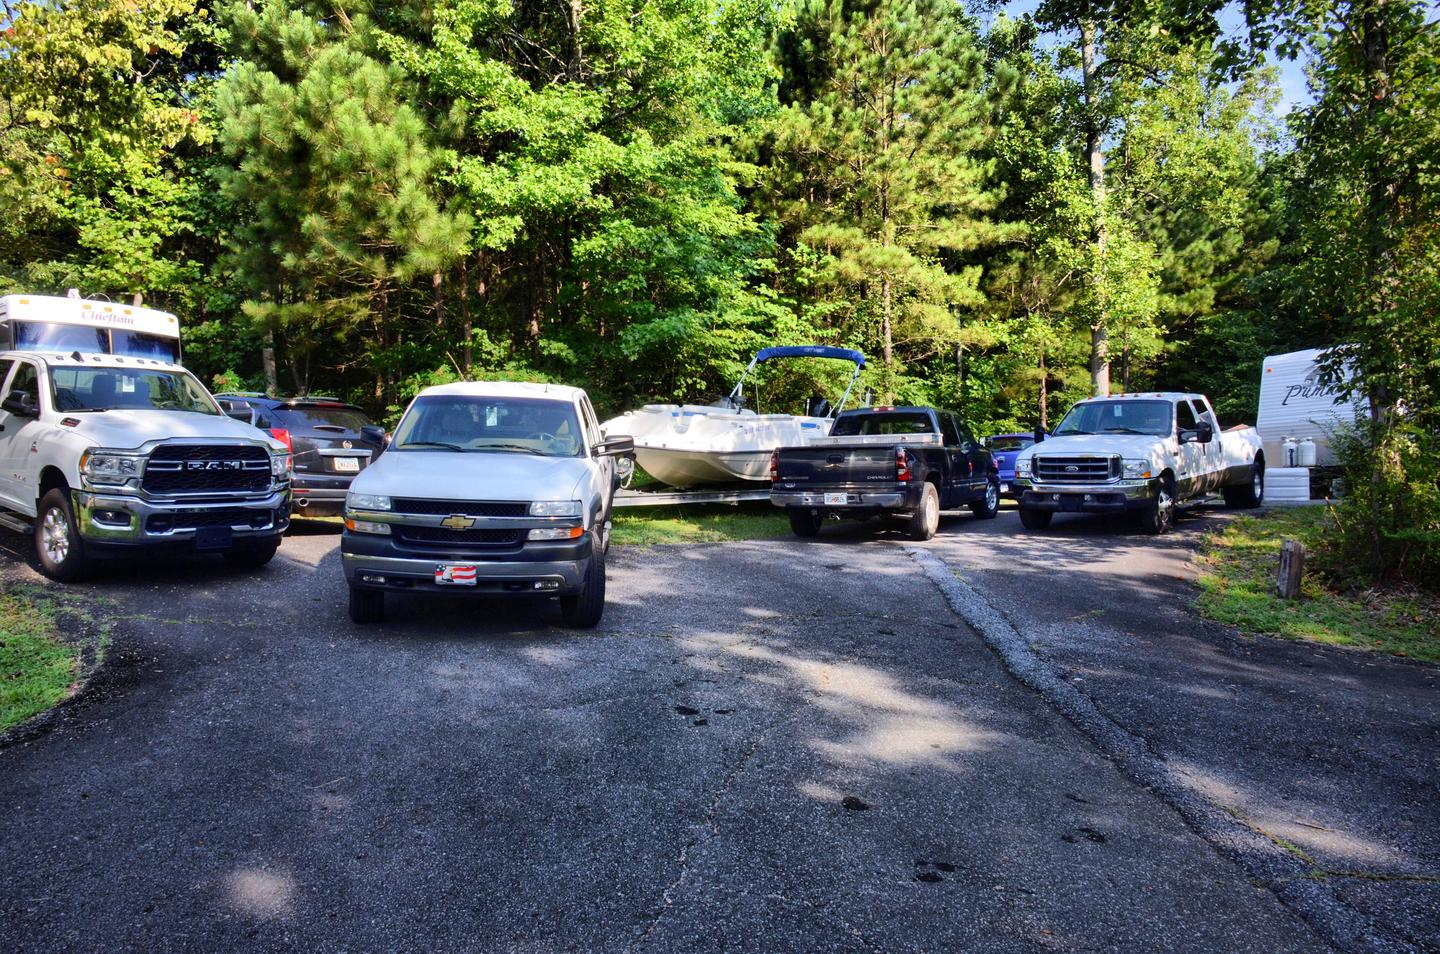 ParkingPayne Campground, campsite 19.  Parking can be tight at times.